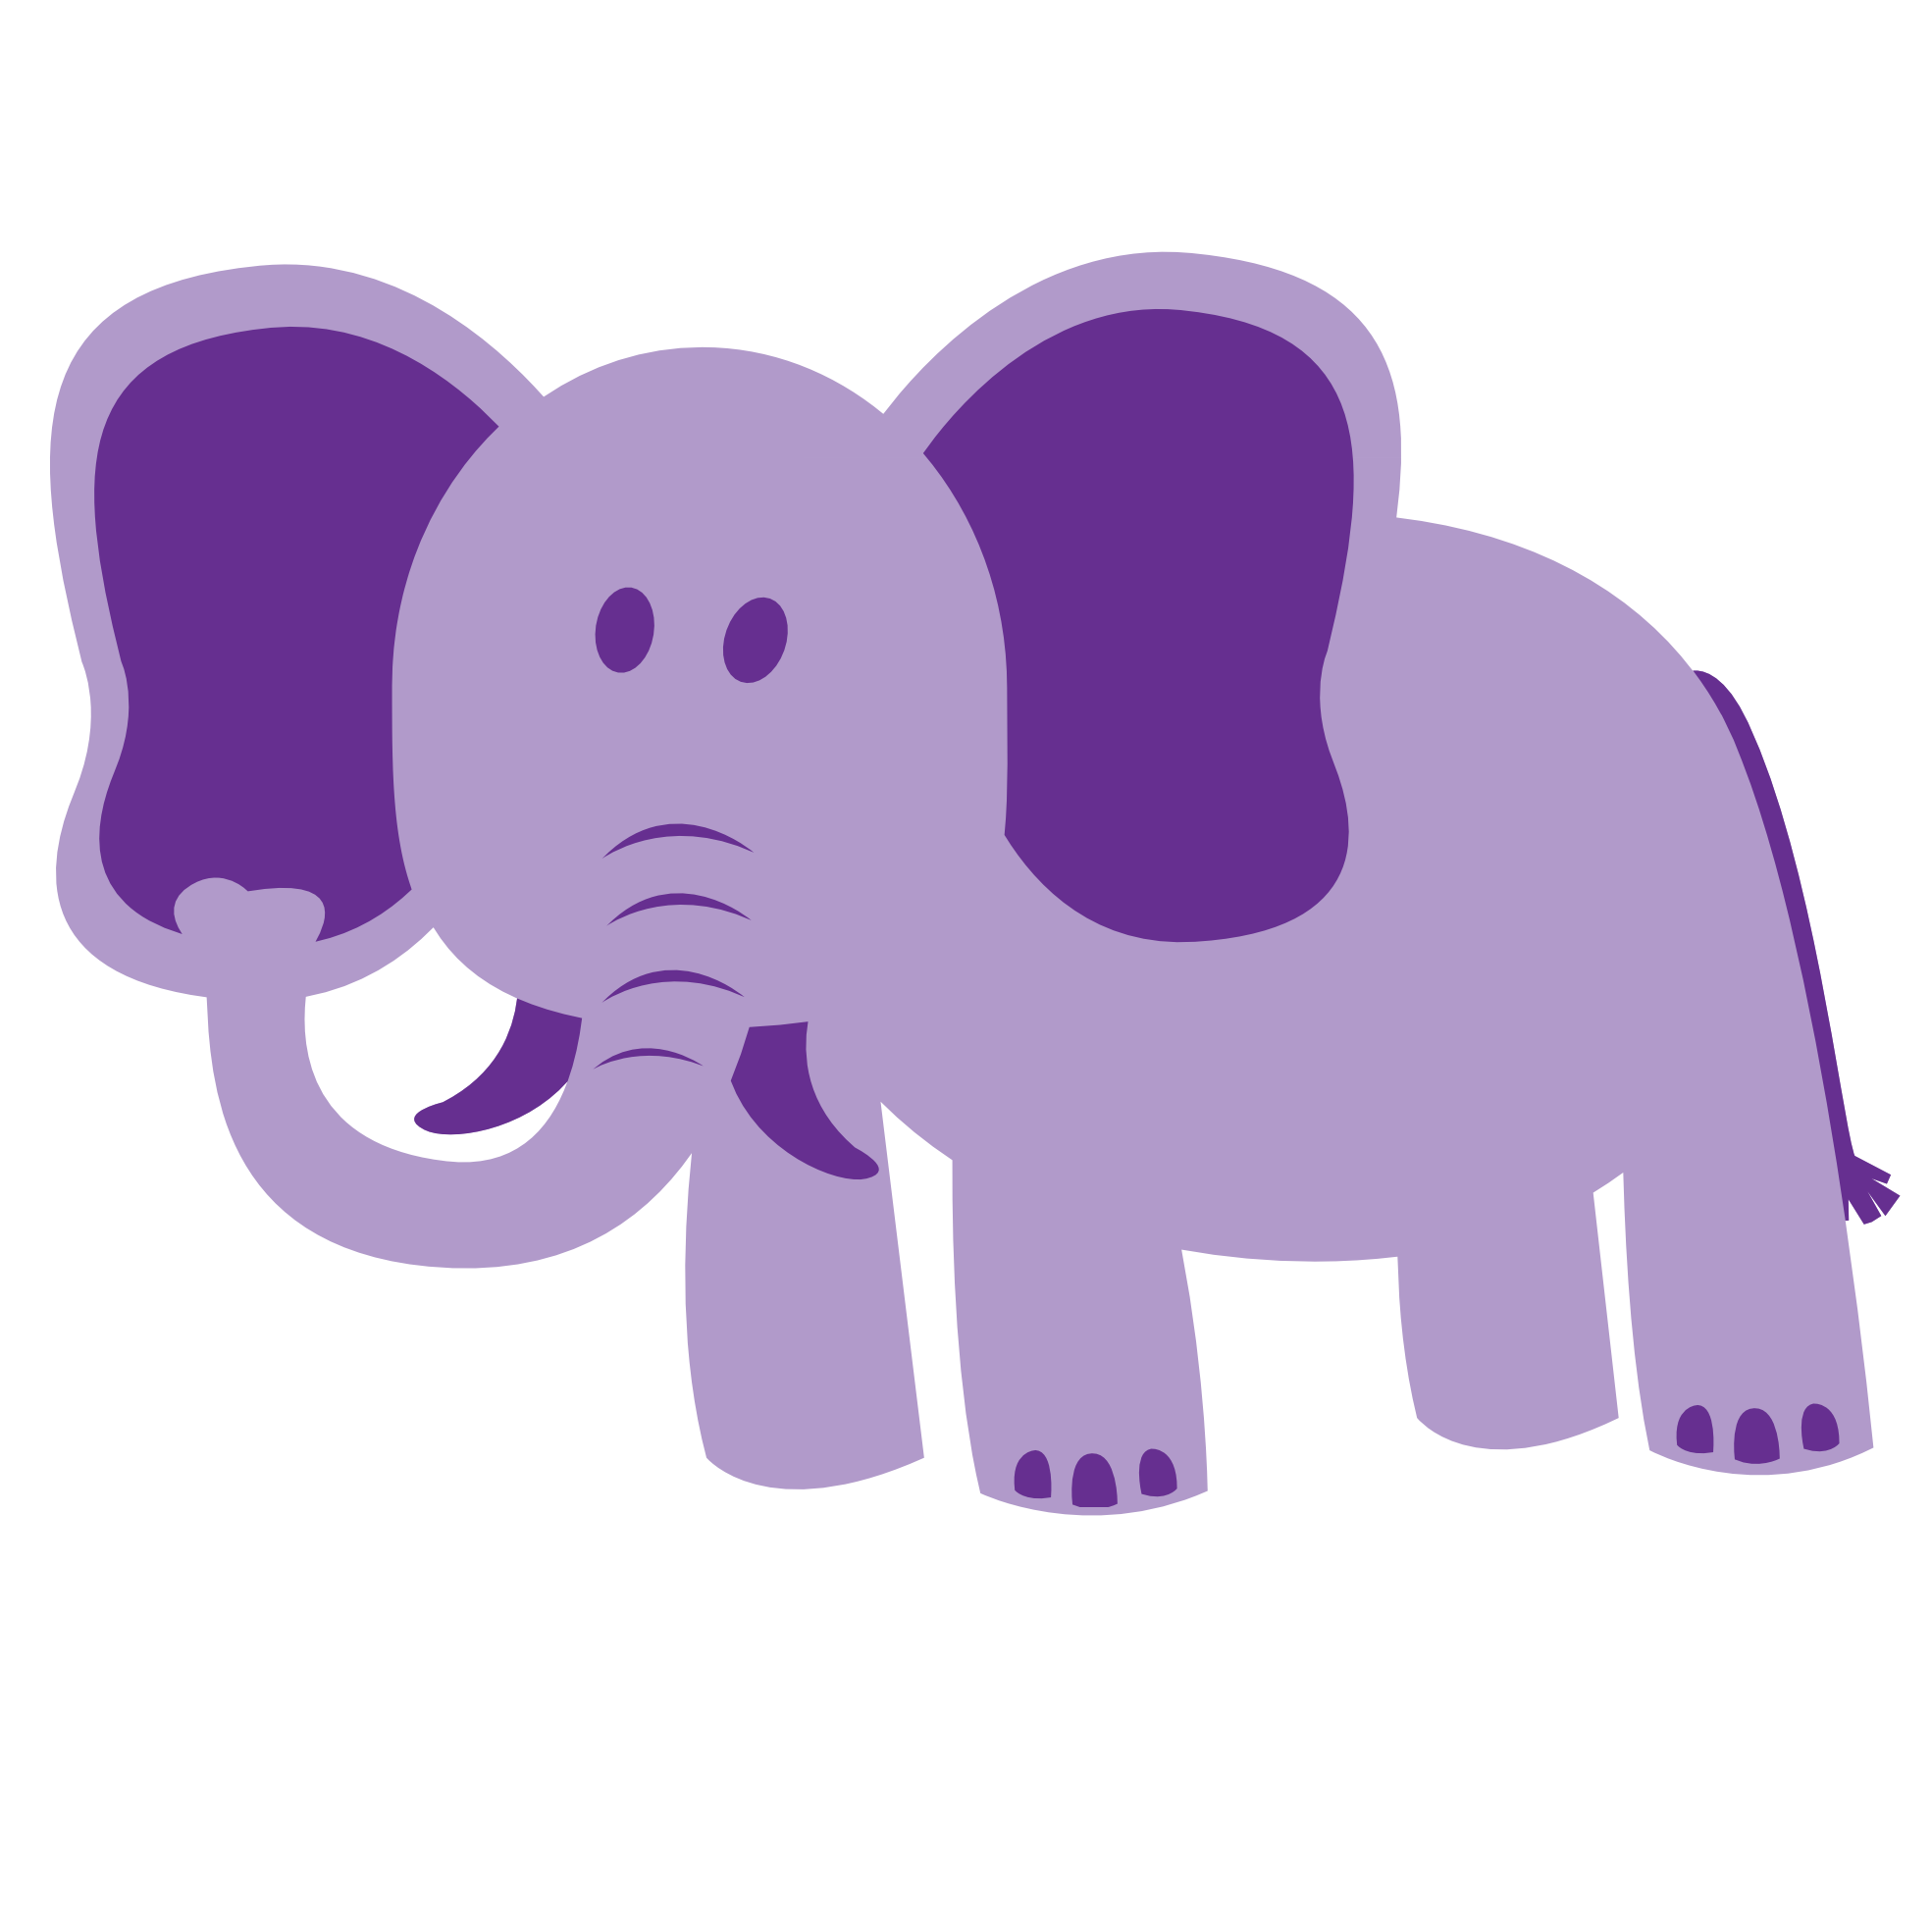 . PlusPng.com Colorful Animal Elephant Geometry 1969px.png 116(K) - Animal Vector PNG